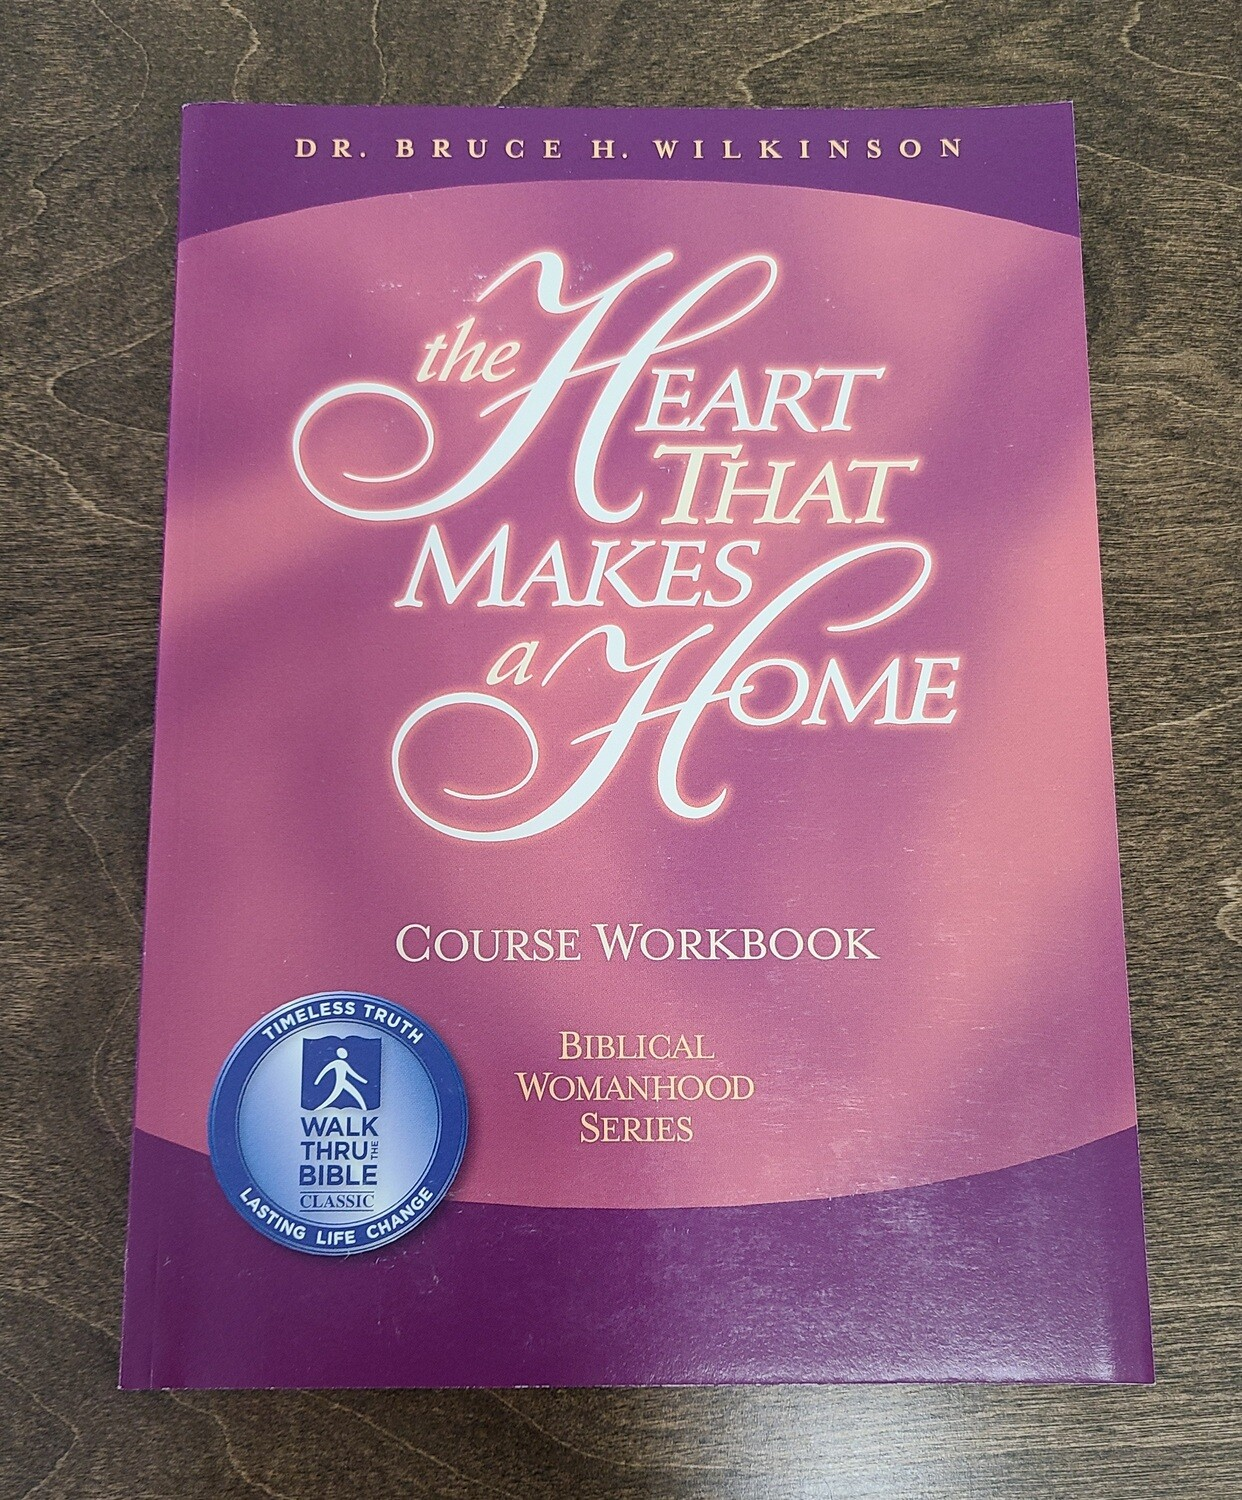 The Heart That Makes a Home: Course Workbook by Dr. Bruce H. Wilkinson